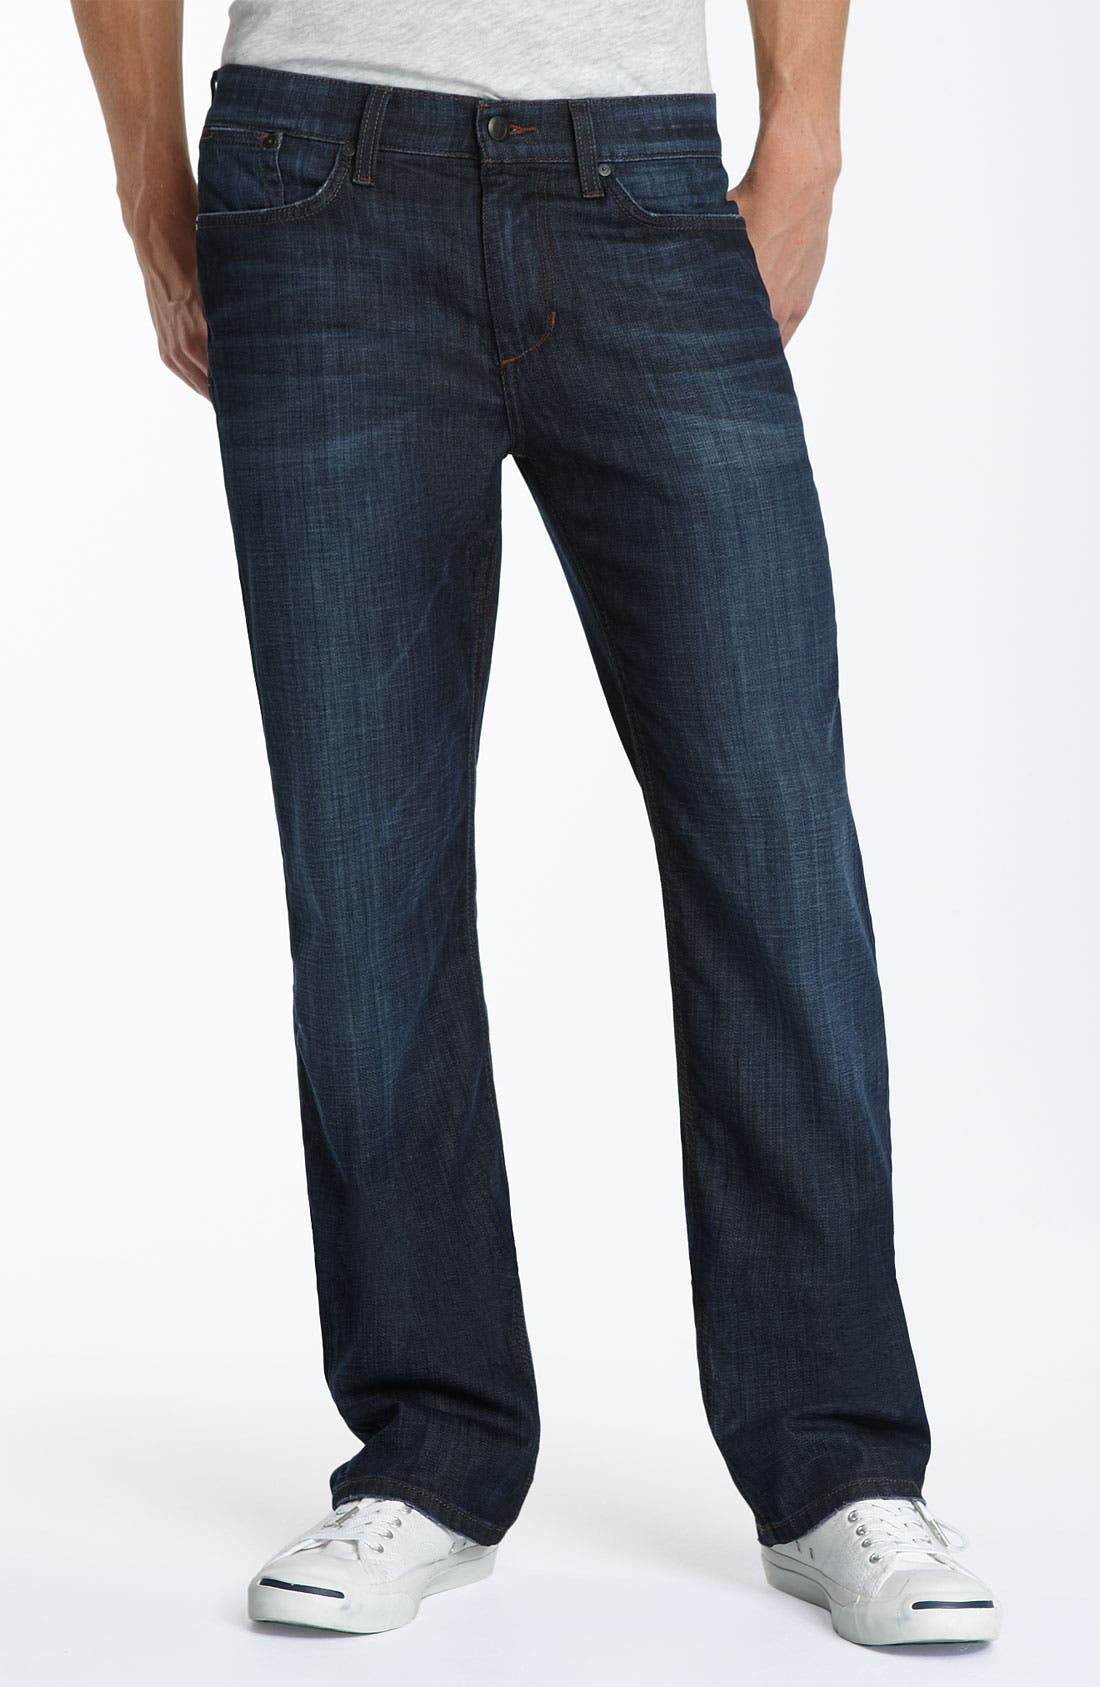 Alternate Image 1 Selected - Joe's 'Classic' Straight Leg Jeans (Dixon) (Tall)